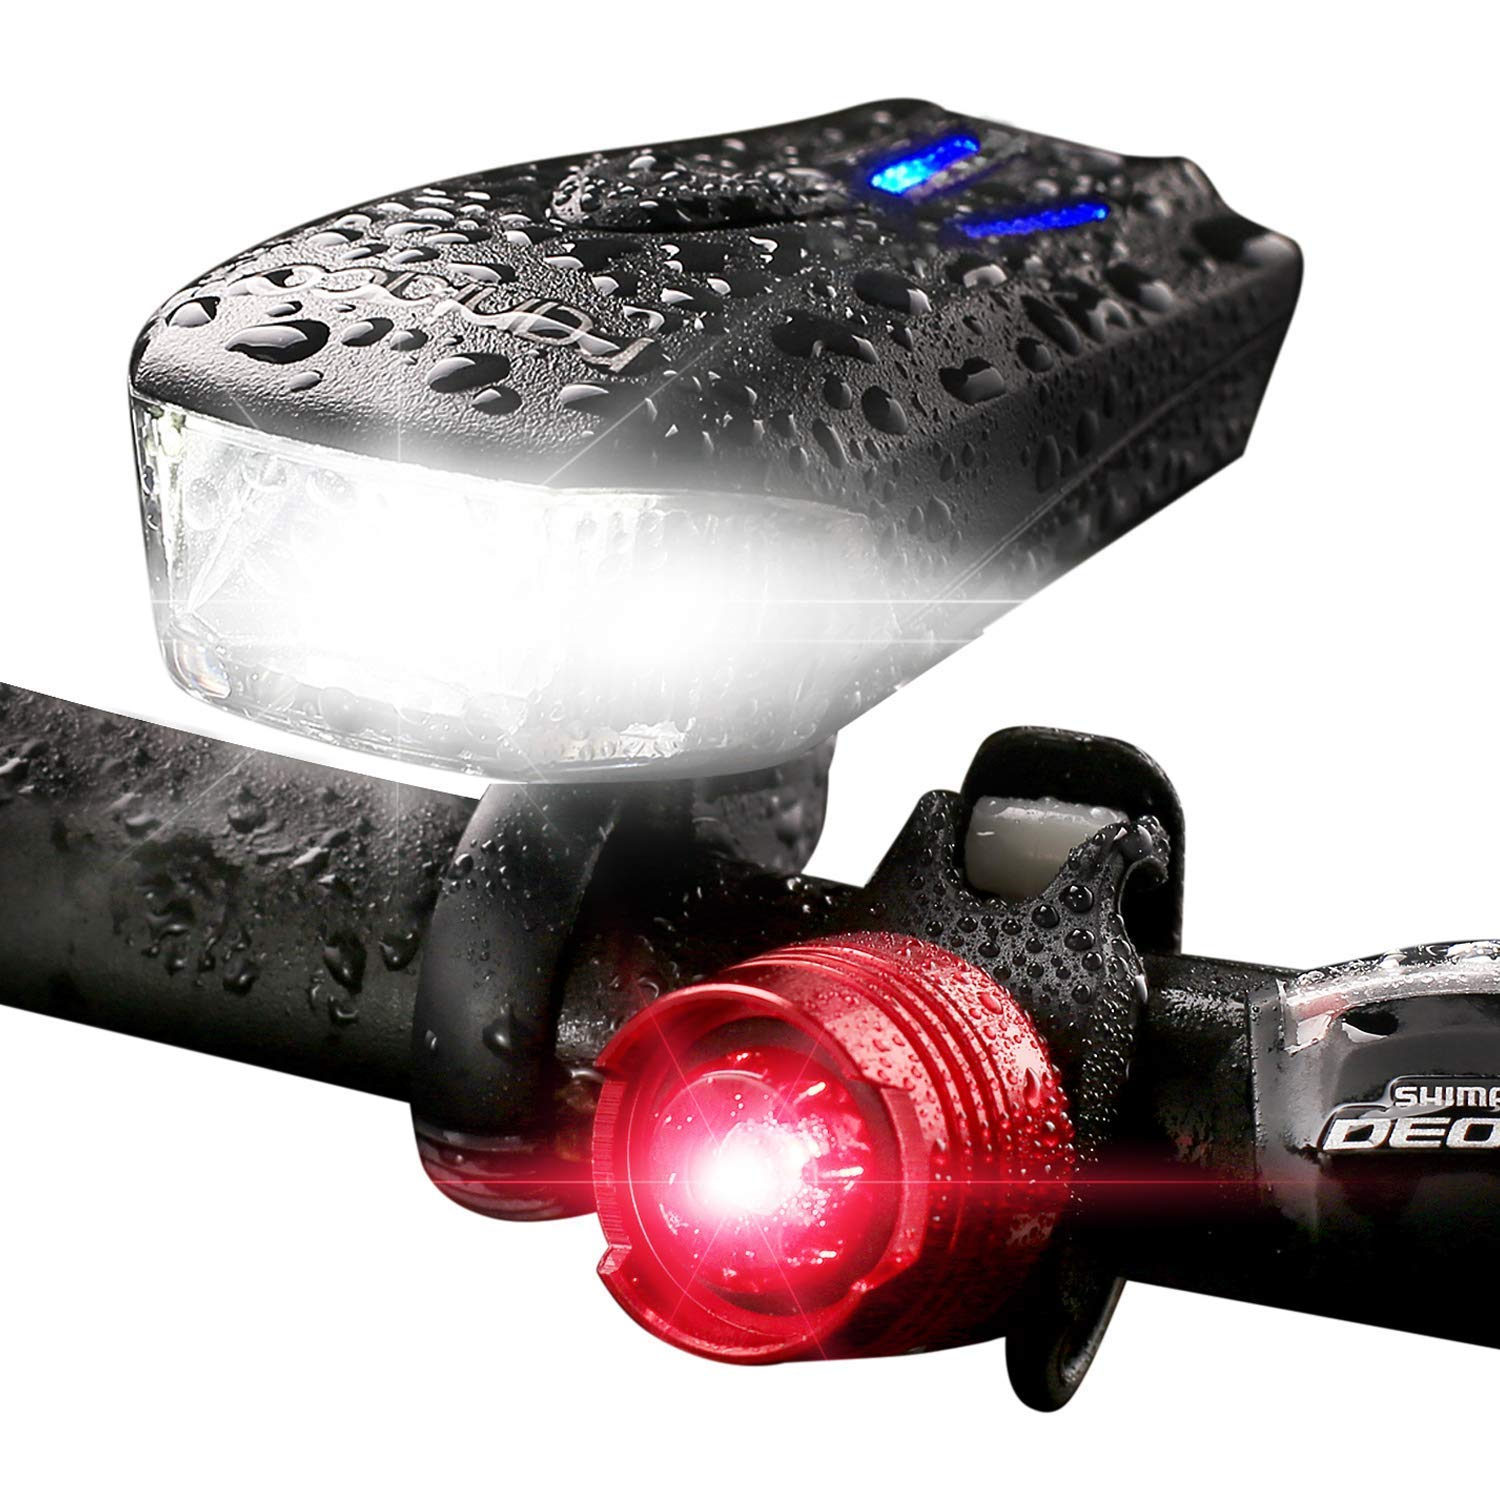 Bicycle Headlight 800 Lumen USB Rechargeable 5 Modes Led Bike Lights Front and Back Set Super Wide Range Design ,Free Rear Tail Light Road Best Cycling Flashlight for Outdoor,IP65 Water-Resistant